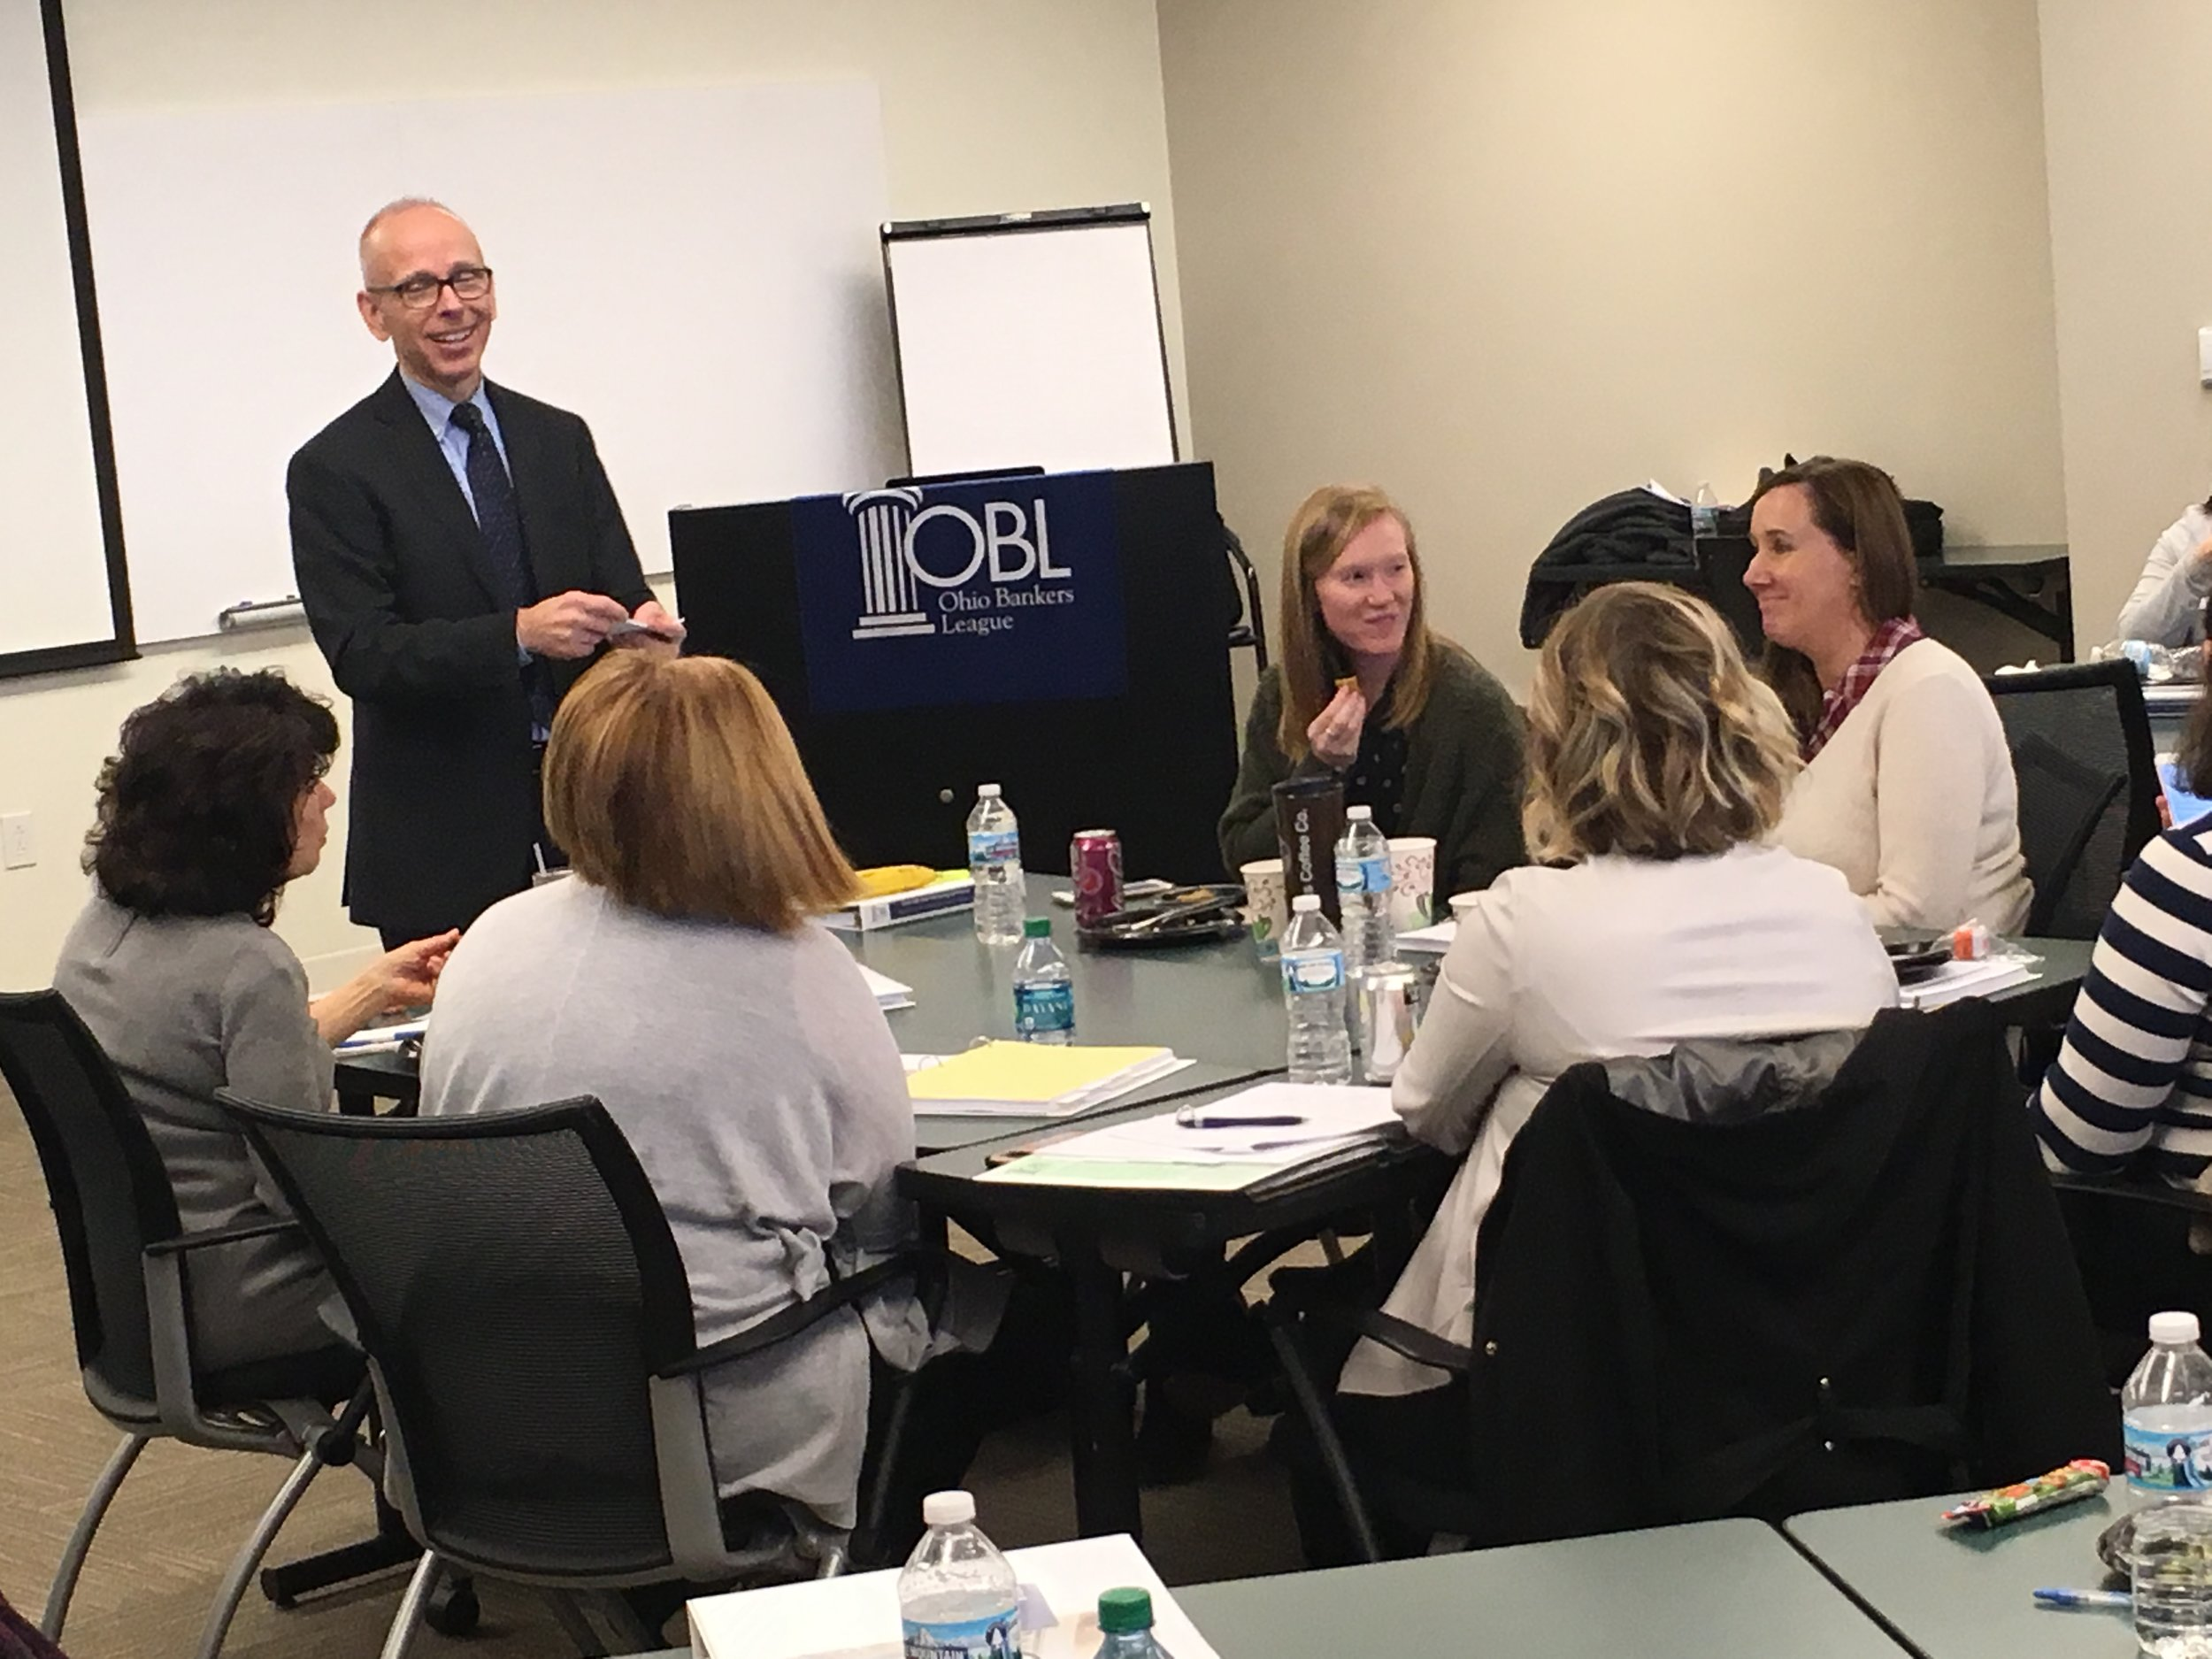 Jim Perry facilitating a roundtable discussion about bank marketing at Ohio Bankers League 2018 Marketing Conference